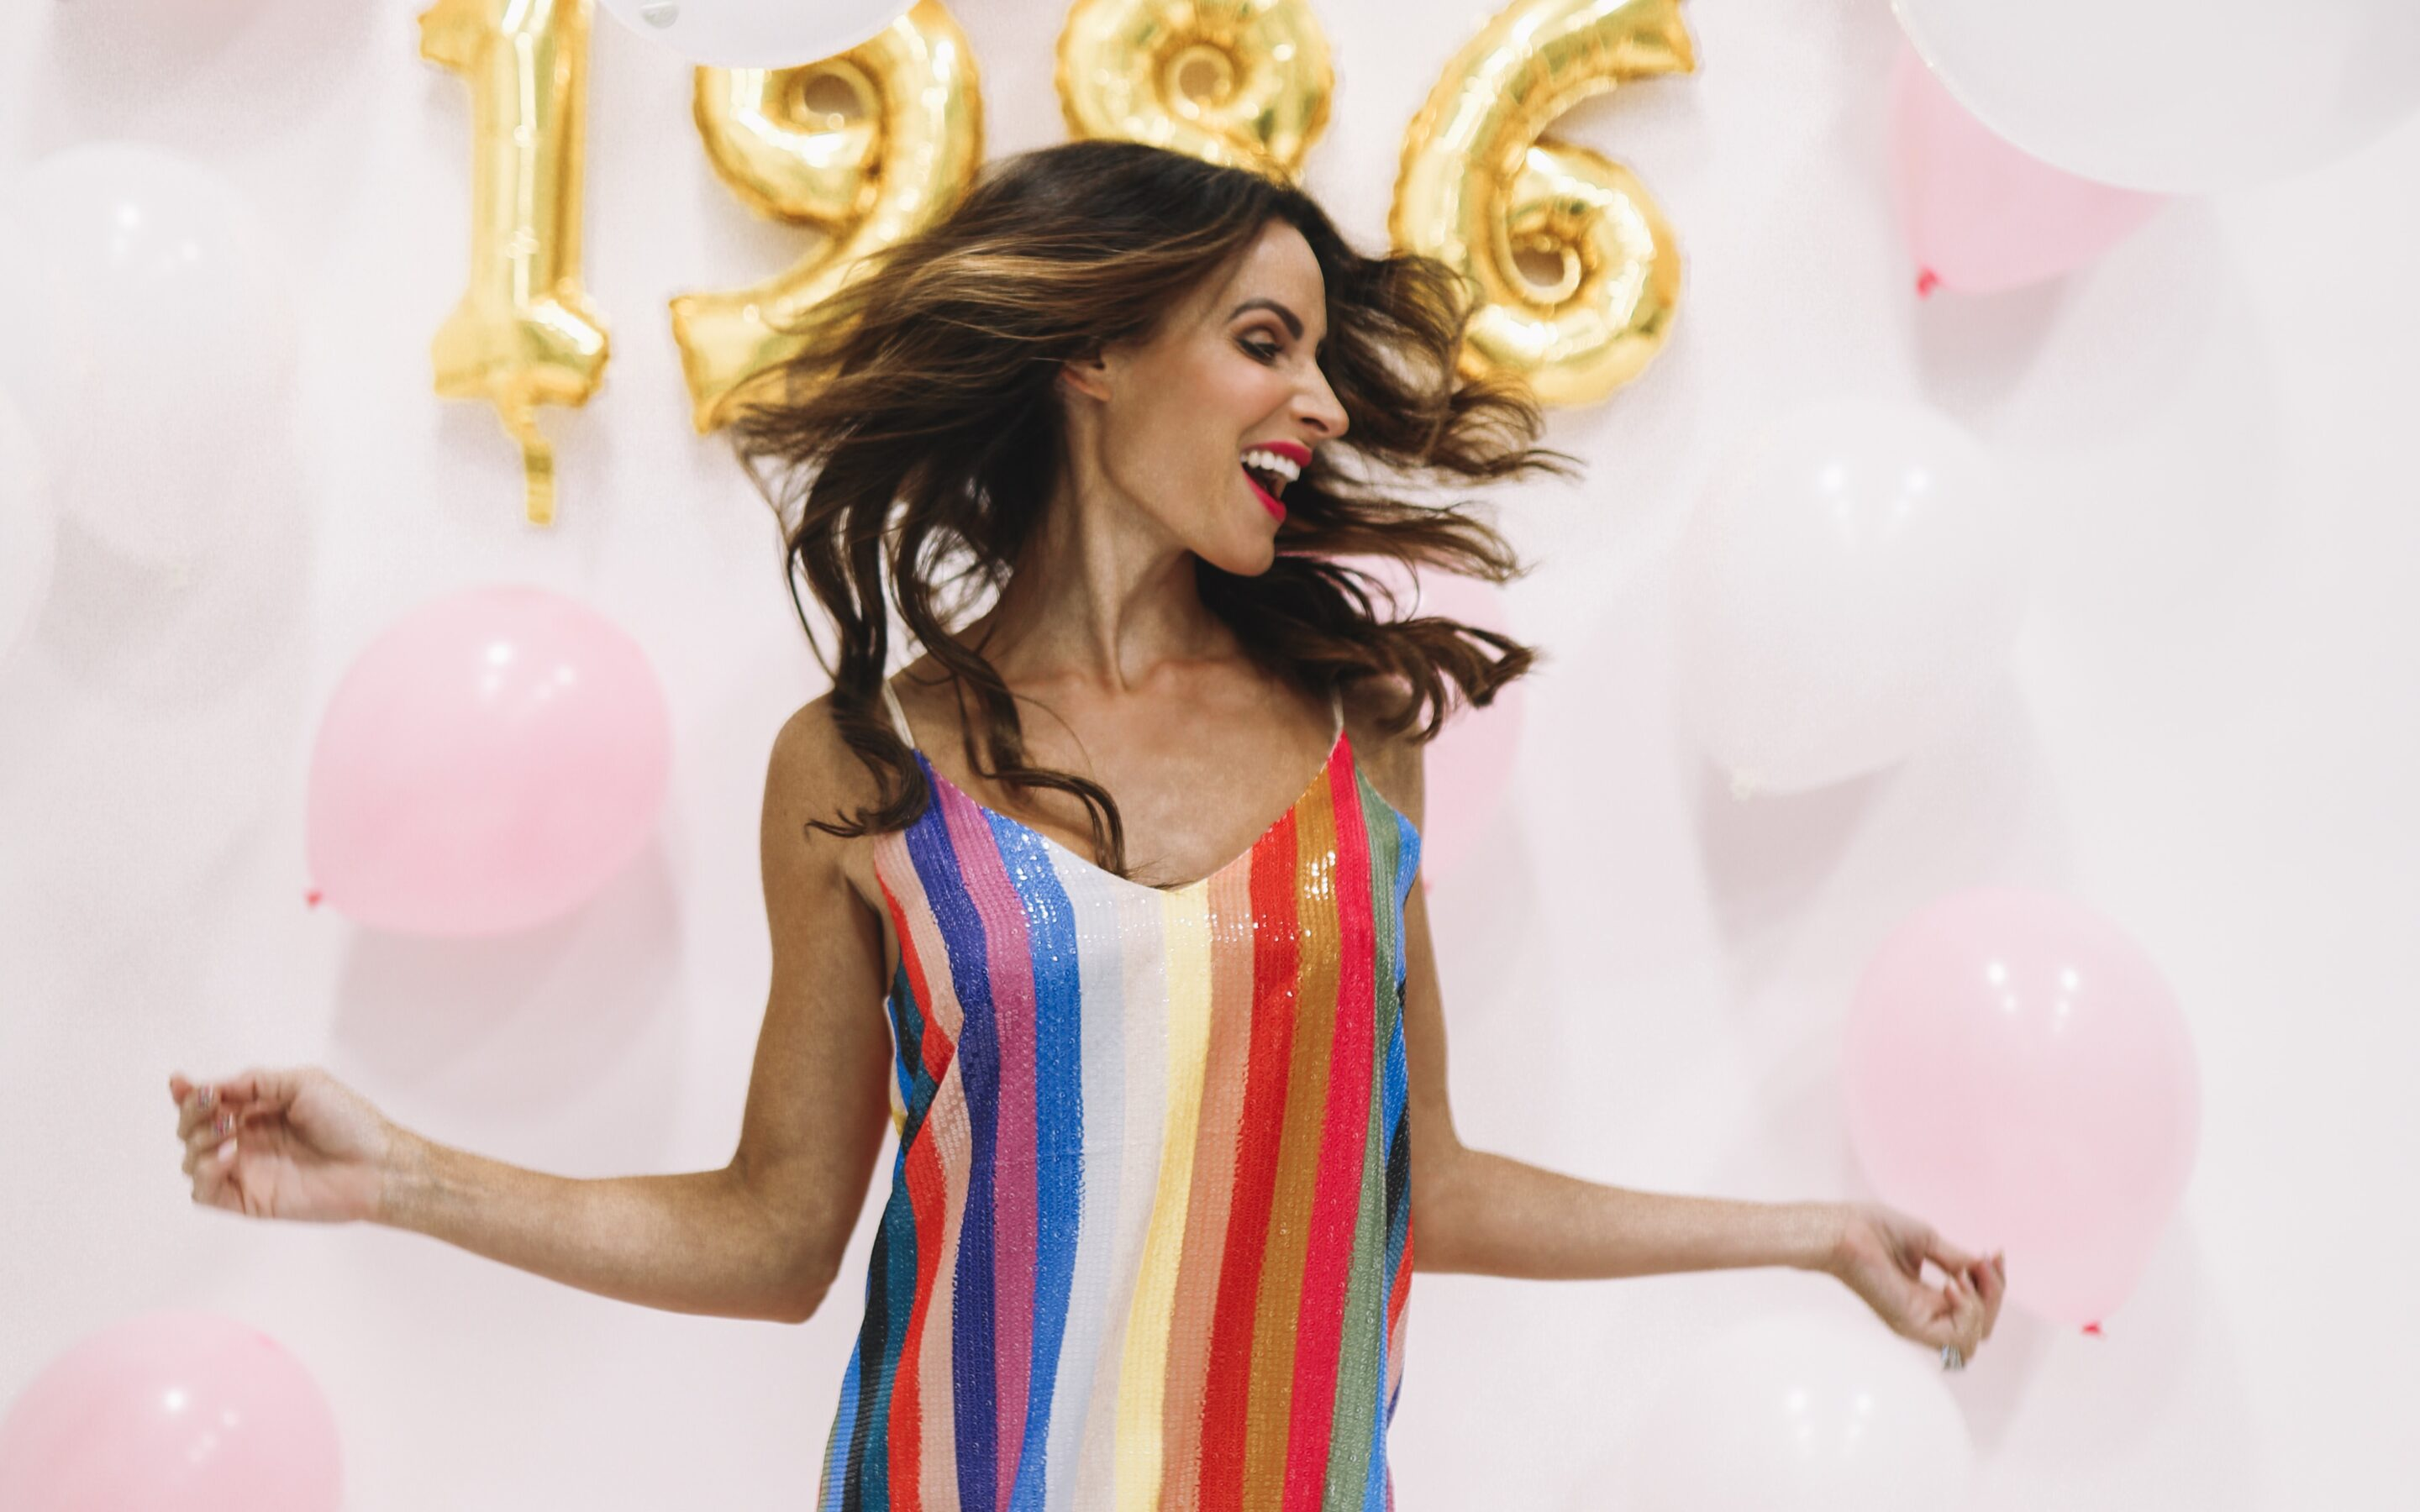 34 Things I Learned Before My 34th Birthday